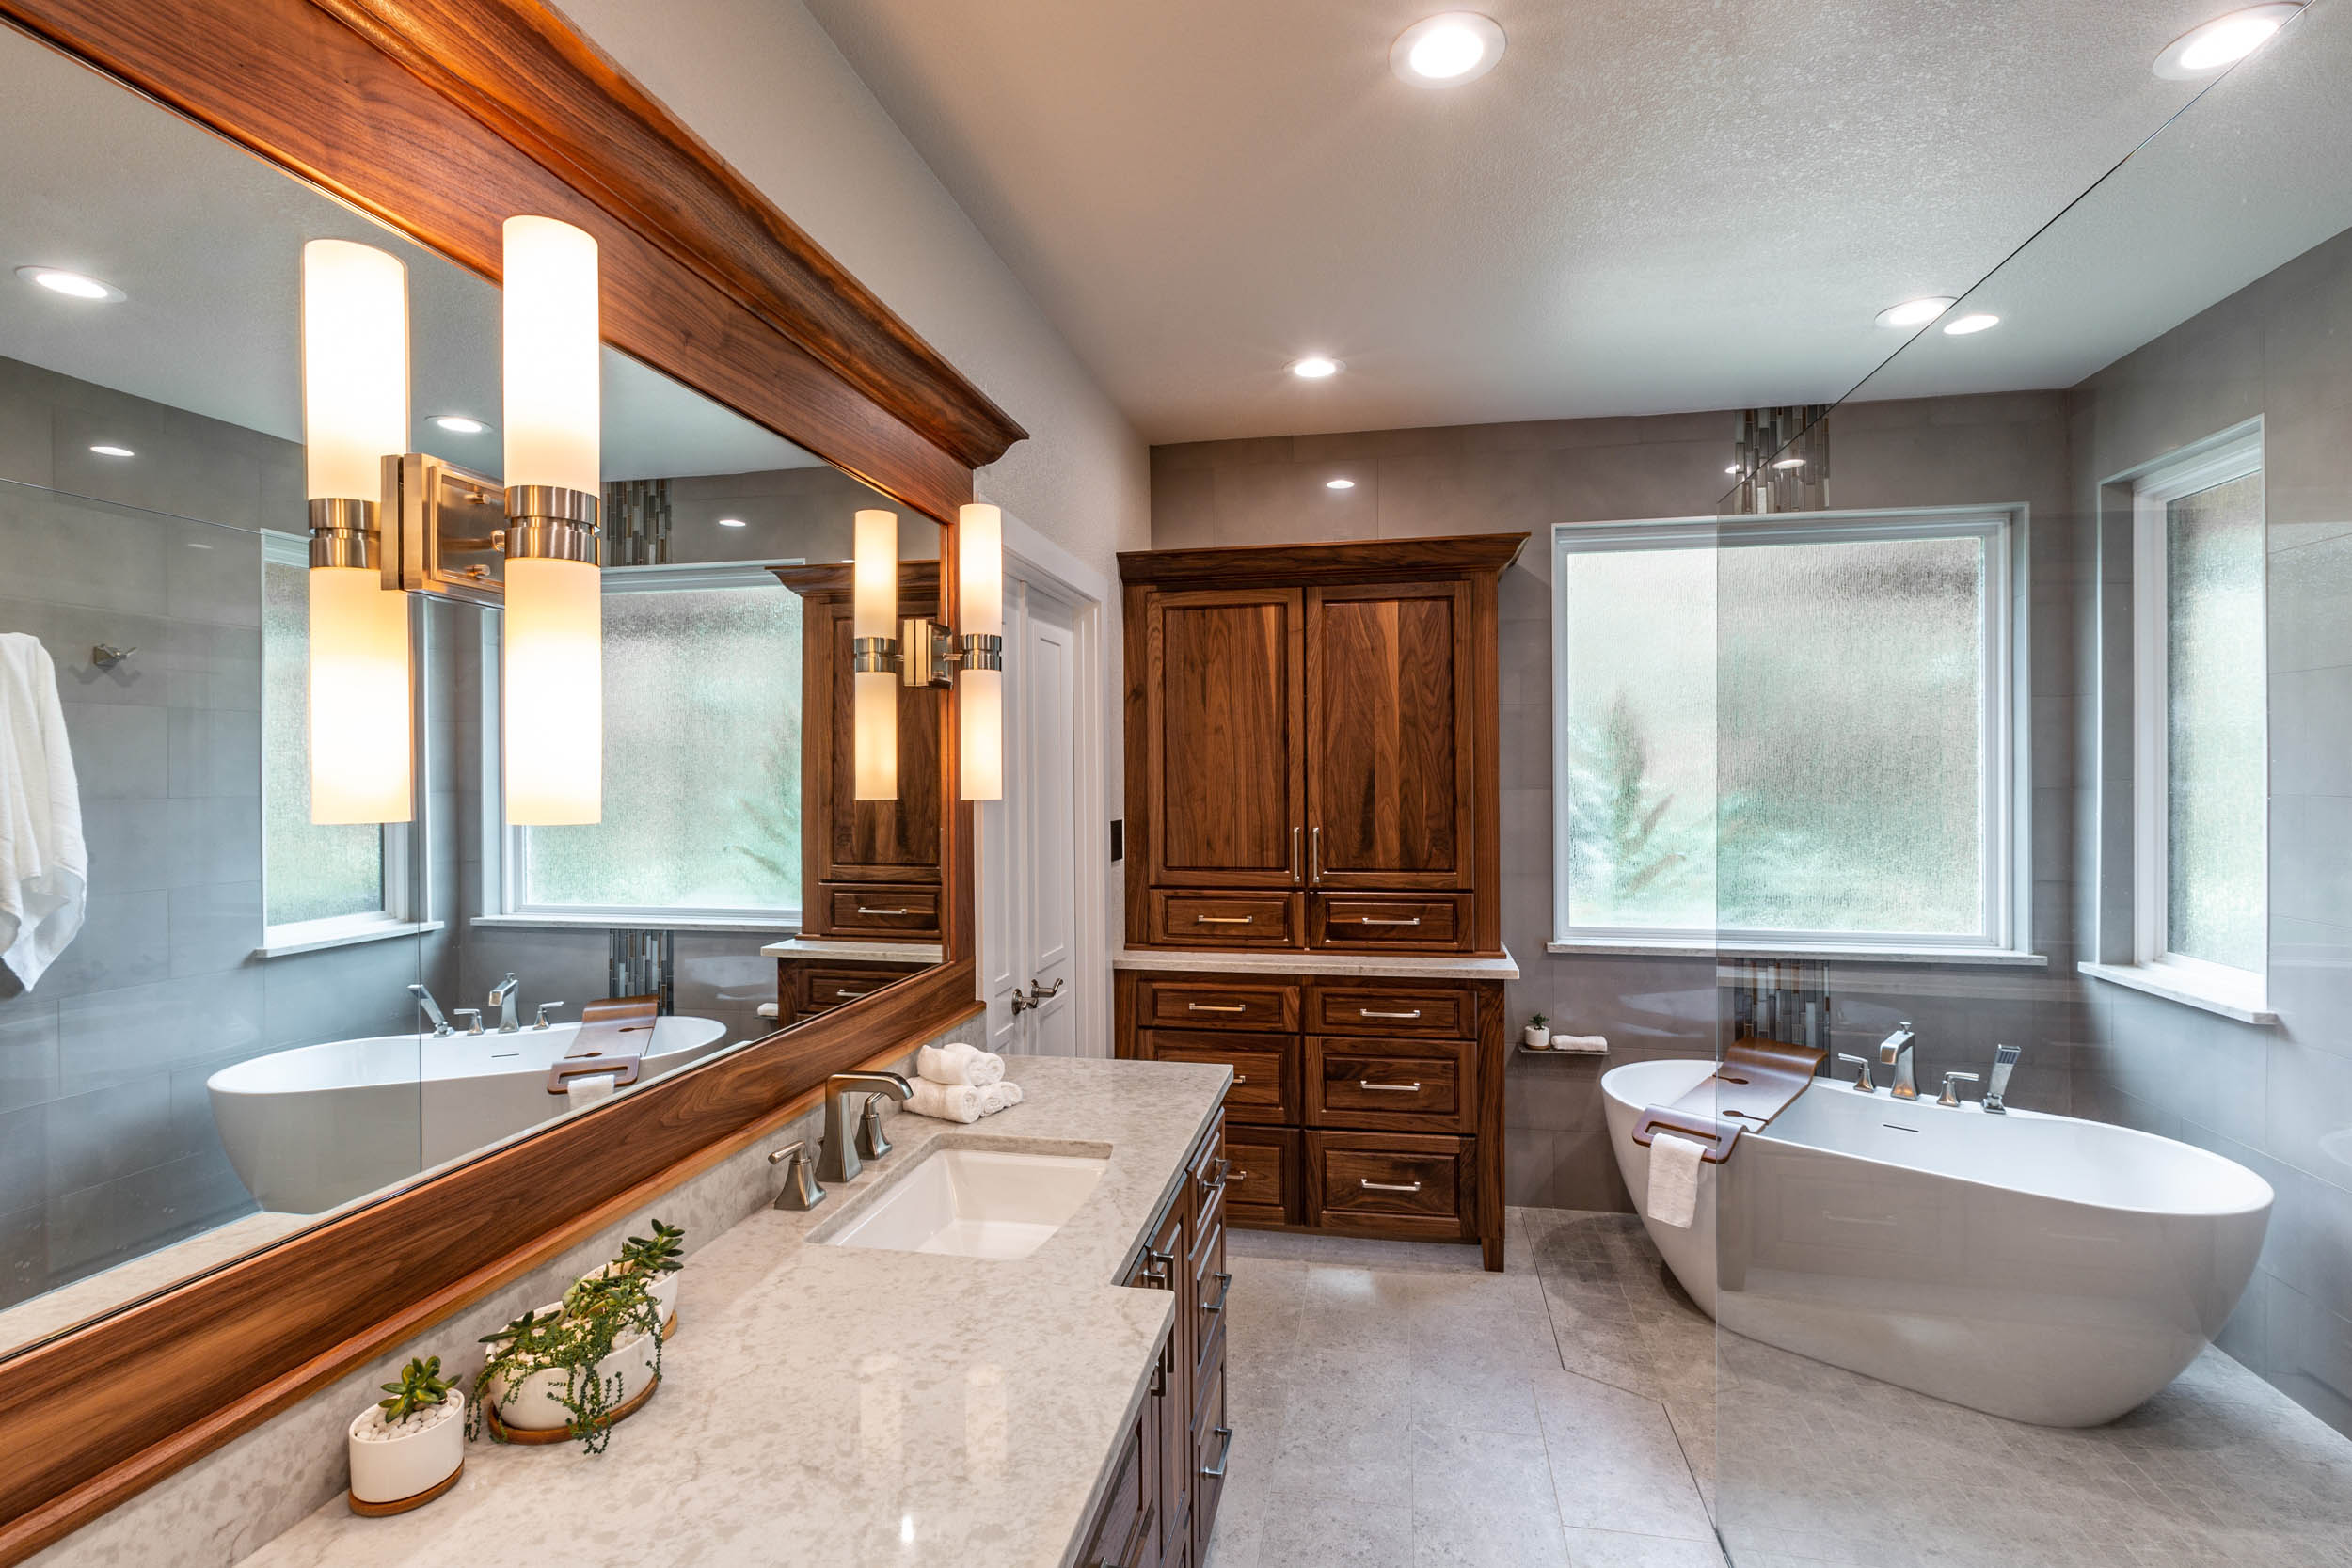 Walnut cabinets by DeWils Custom Cabinetry in bath remodel by Signature Home Services